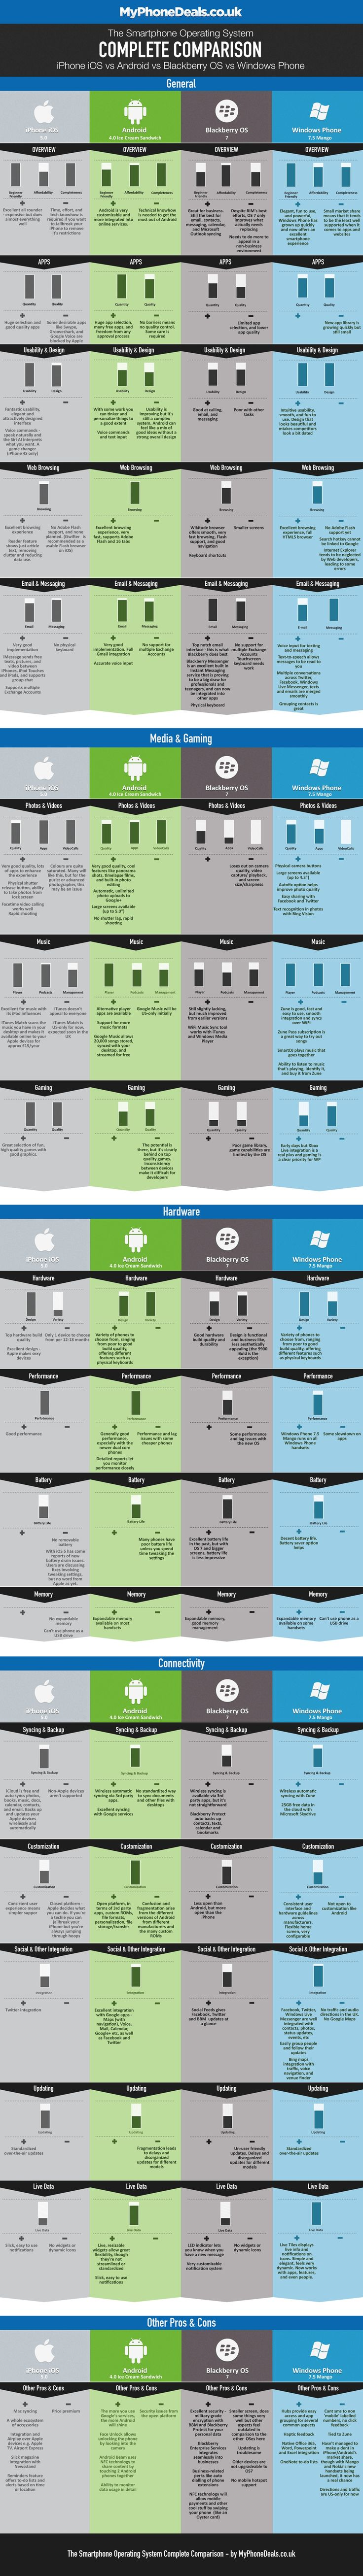 Android, iOS and Windows Phone compared in infographic | CNET UK